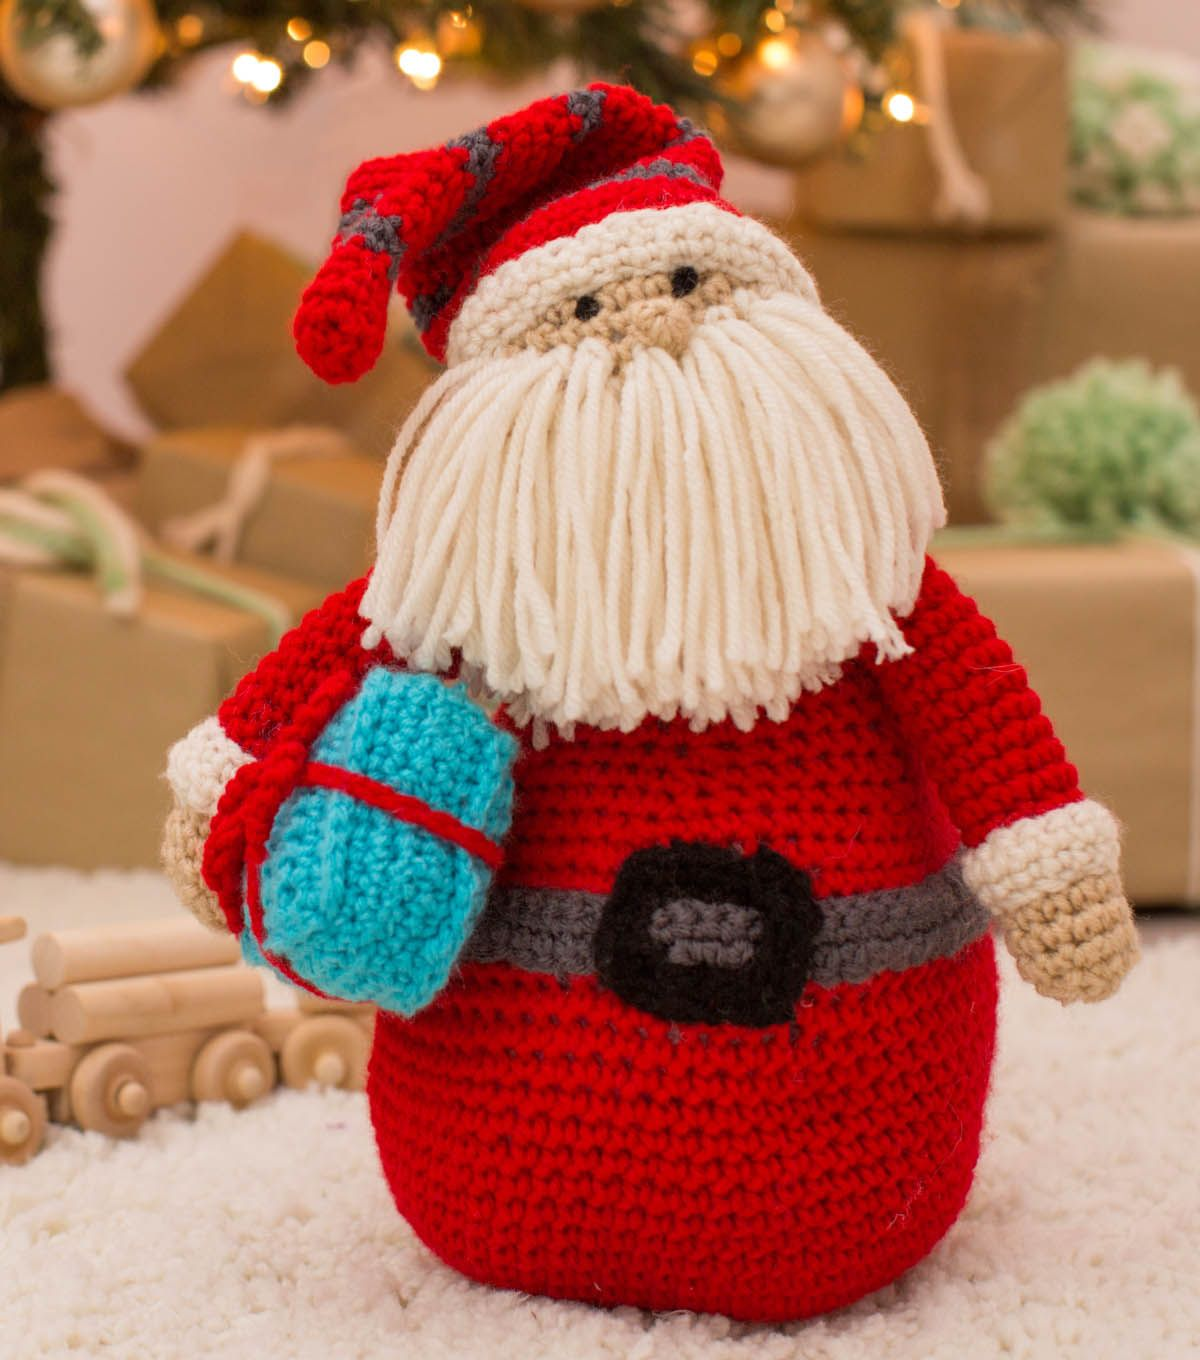 Huggable santa pillow knit and crochet pinterest free over 120 free christmas crochet patterns to suit everyones needs crochet santa toys ornaments stars garlands christmas trees and more bankloansurffo Choice Image